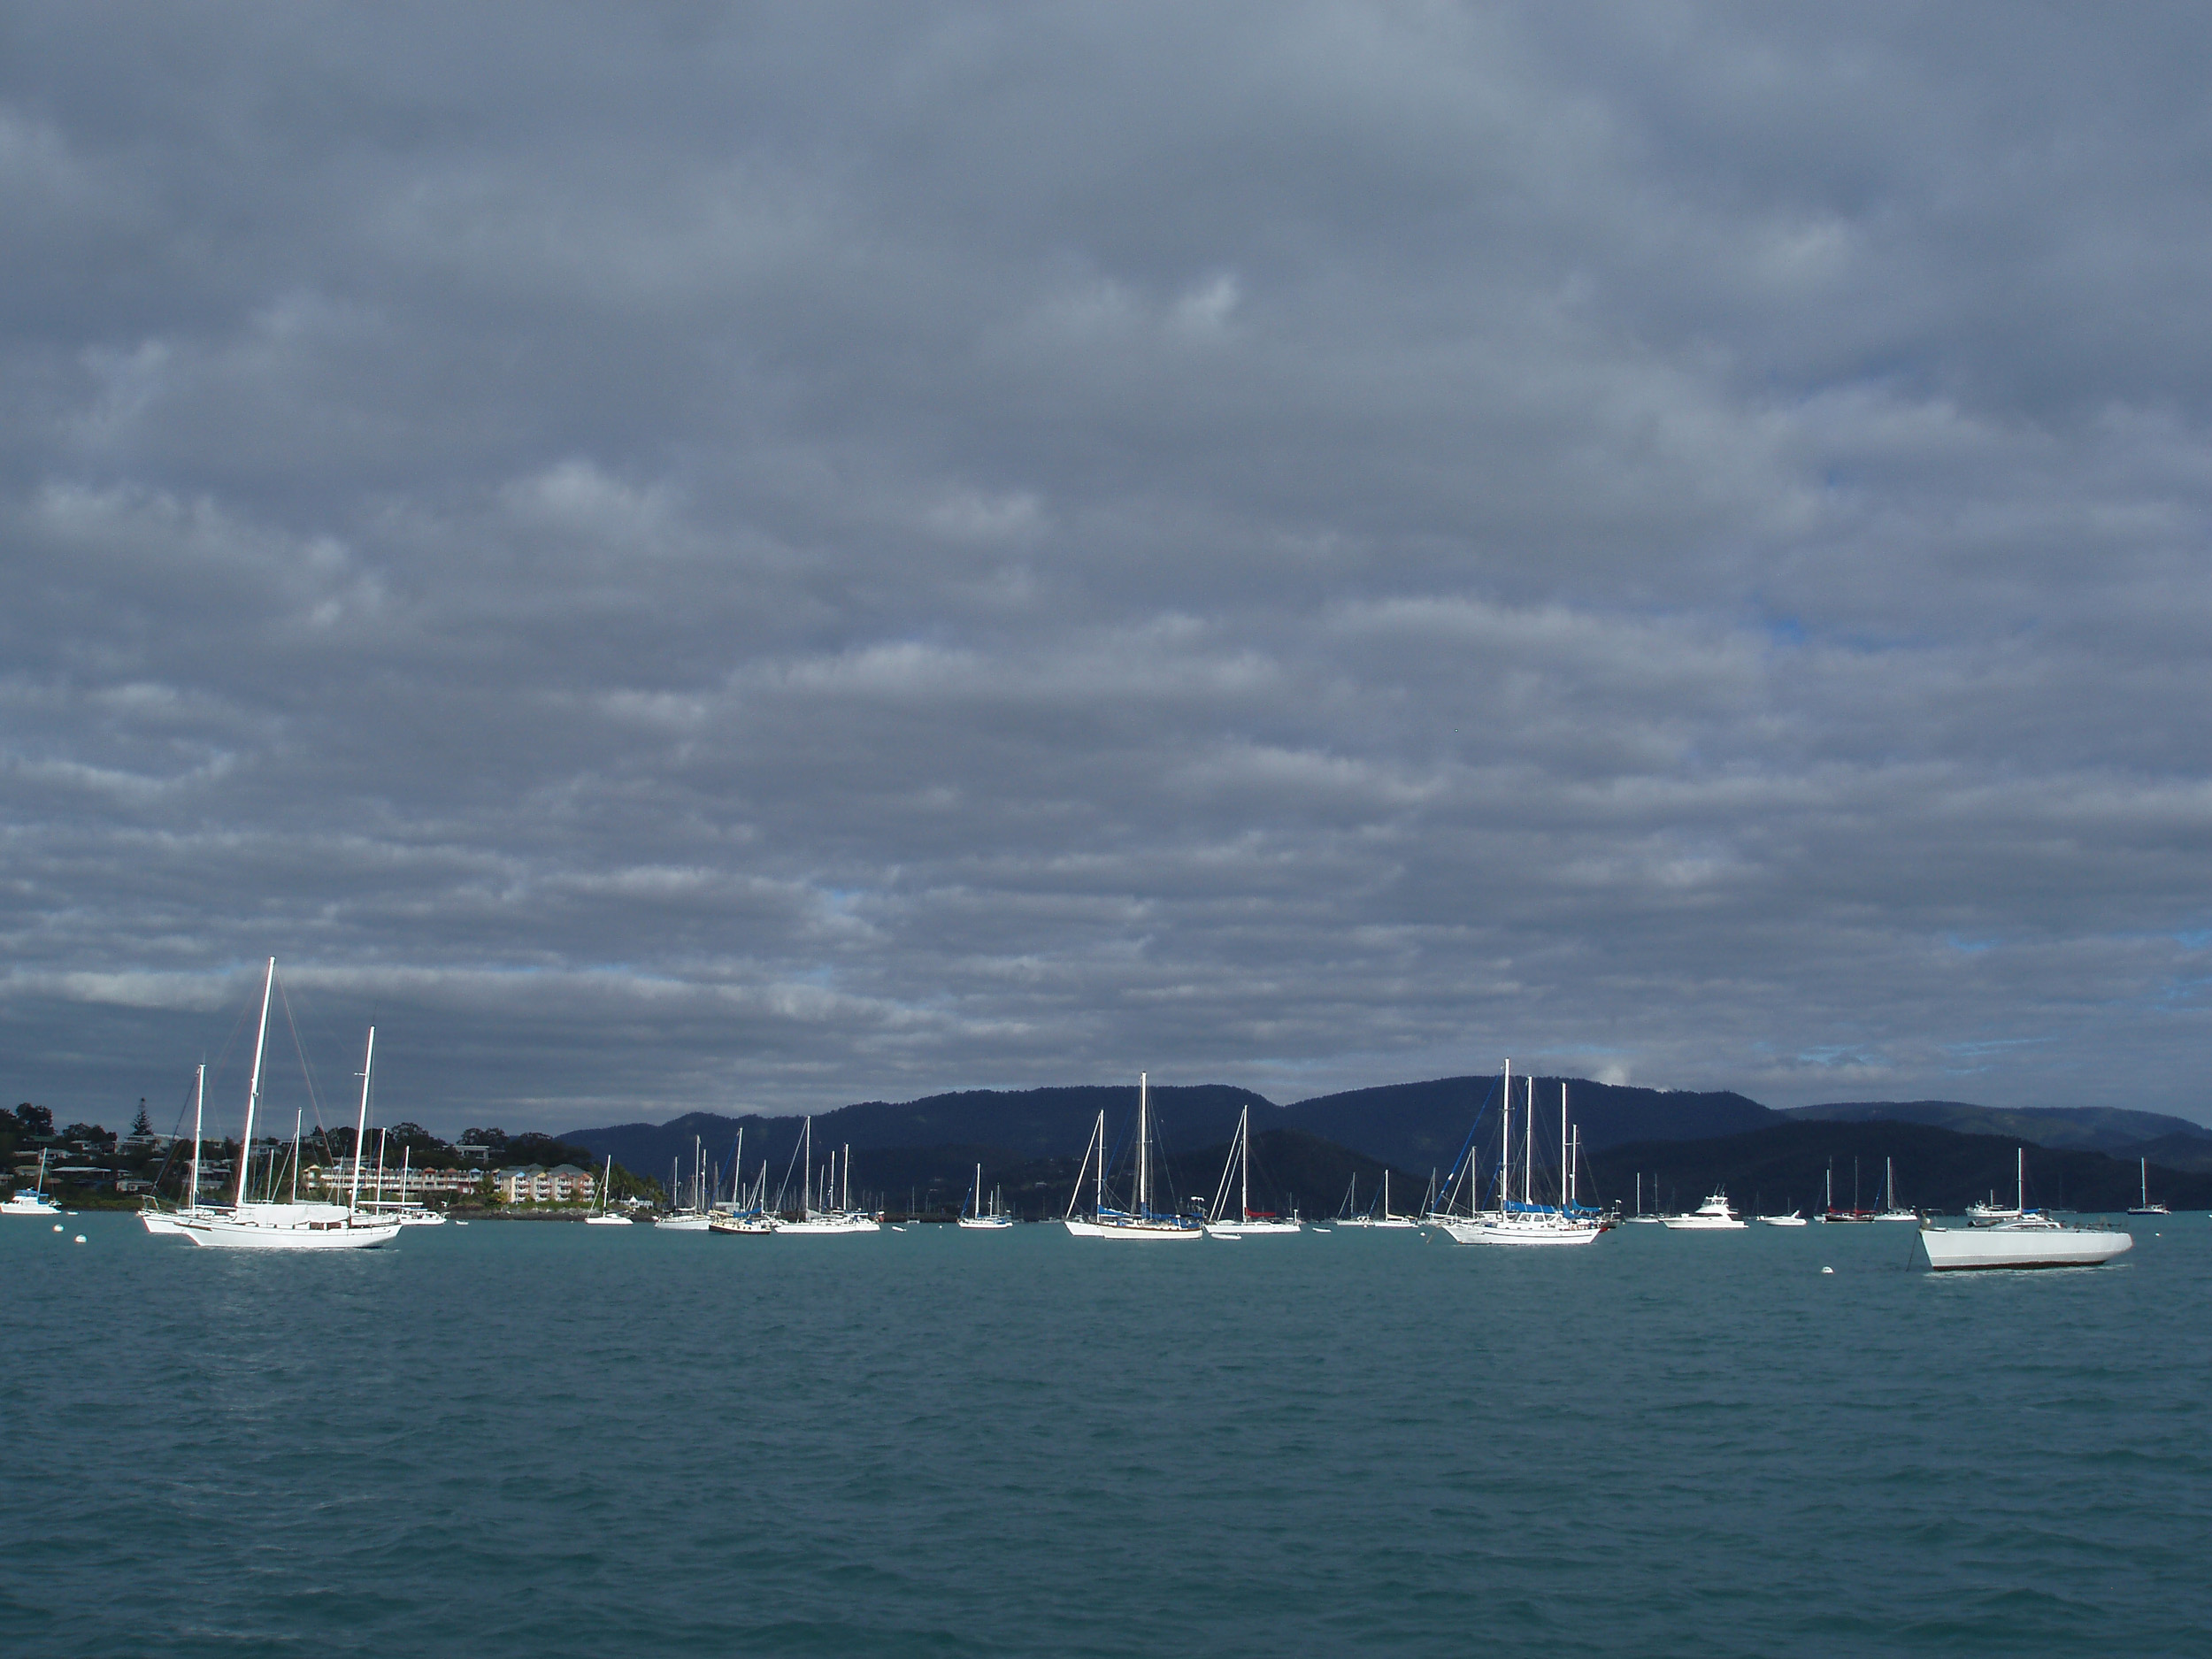 boats moored or anchored off airle beach in muddy bay - pioneer bay